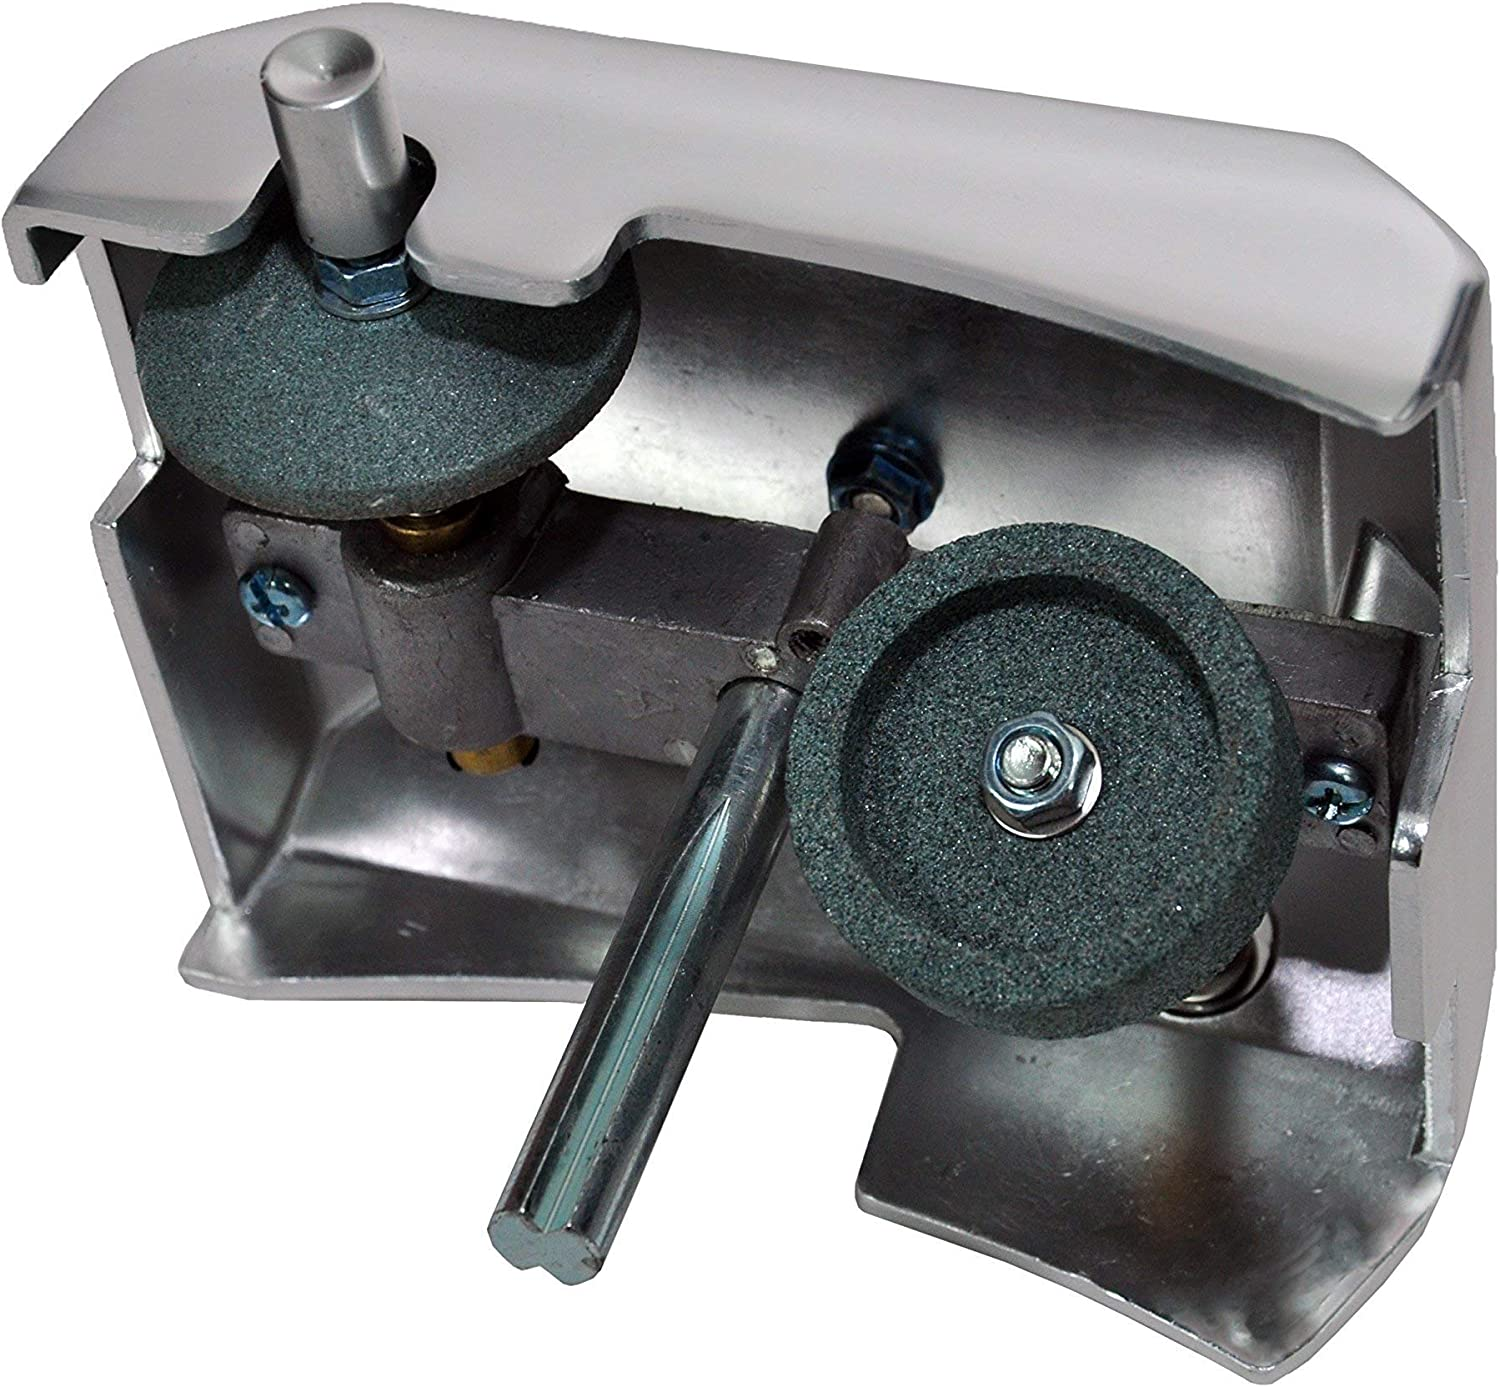 top-rated meat slicers